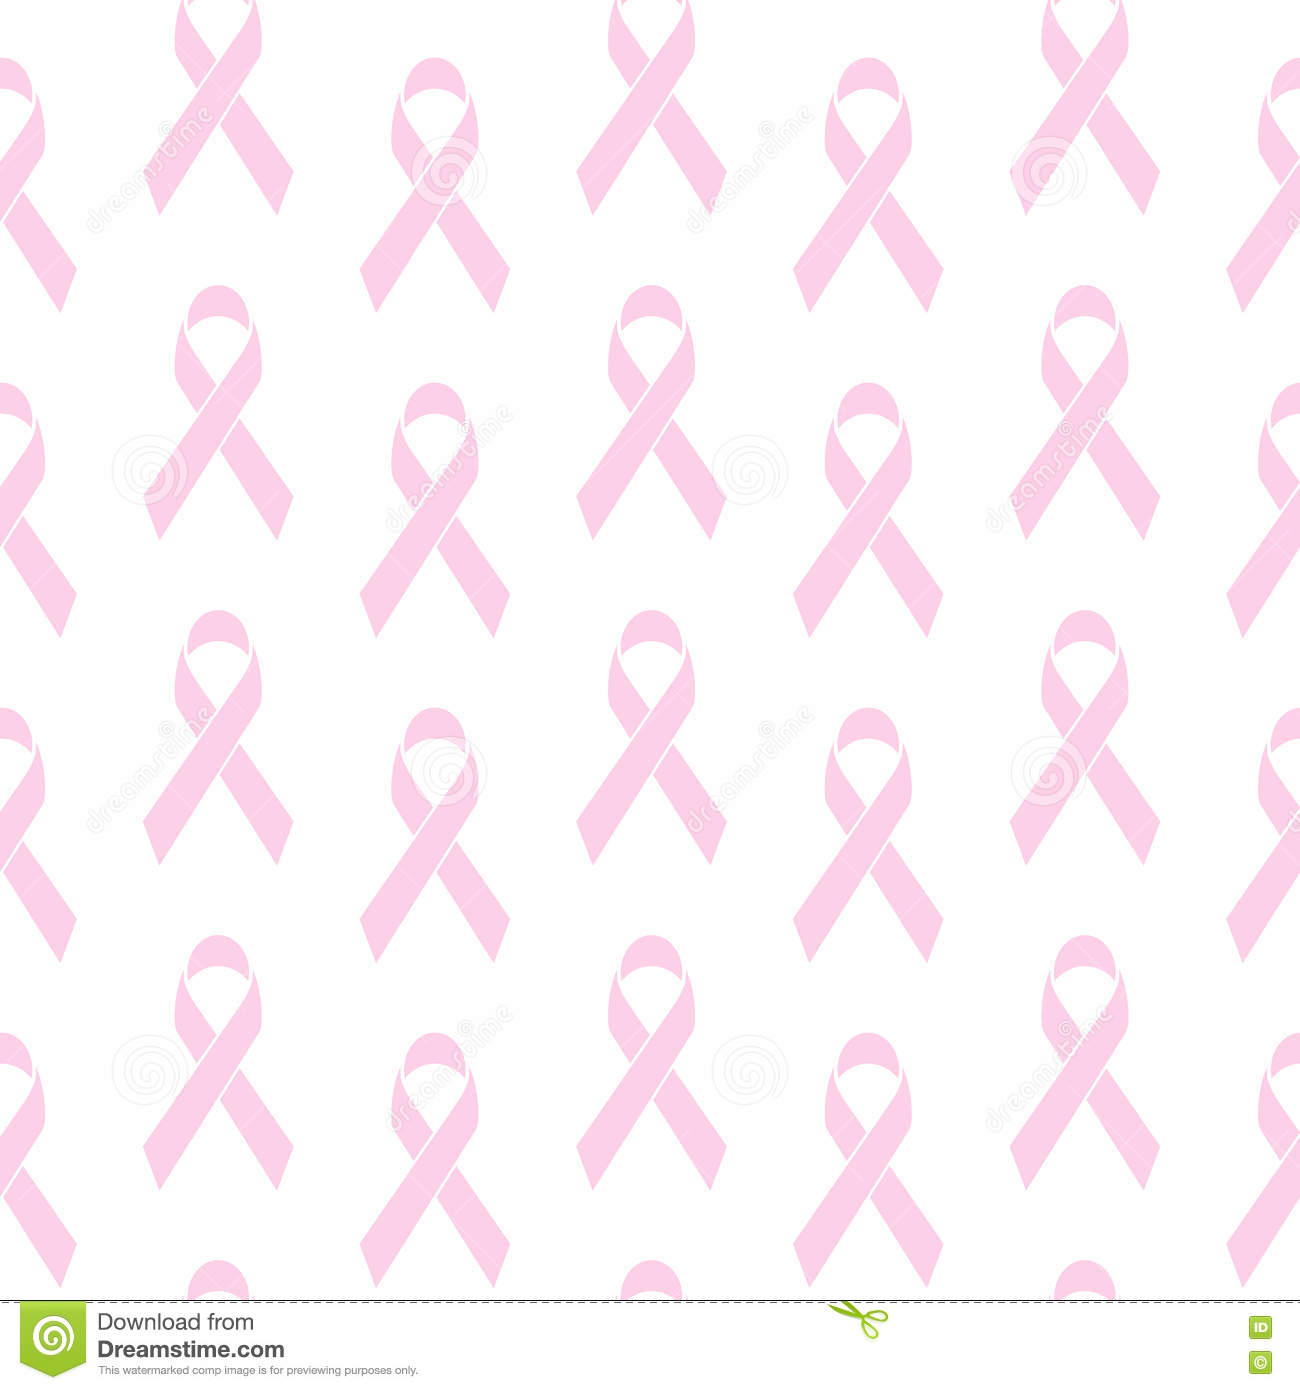 Breast Cancer Awareness Ribbon Sign Seamless Pattern